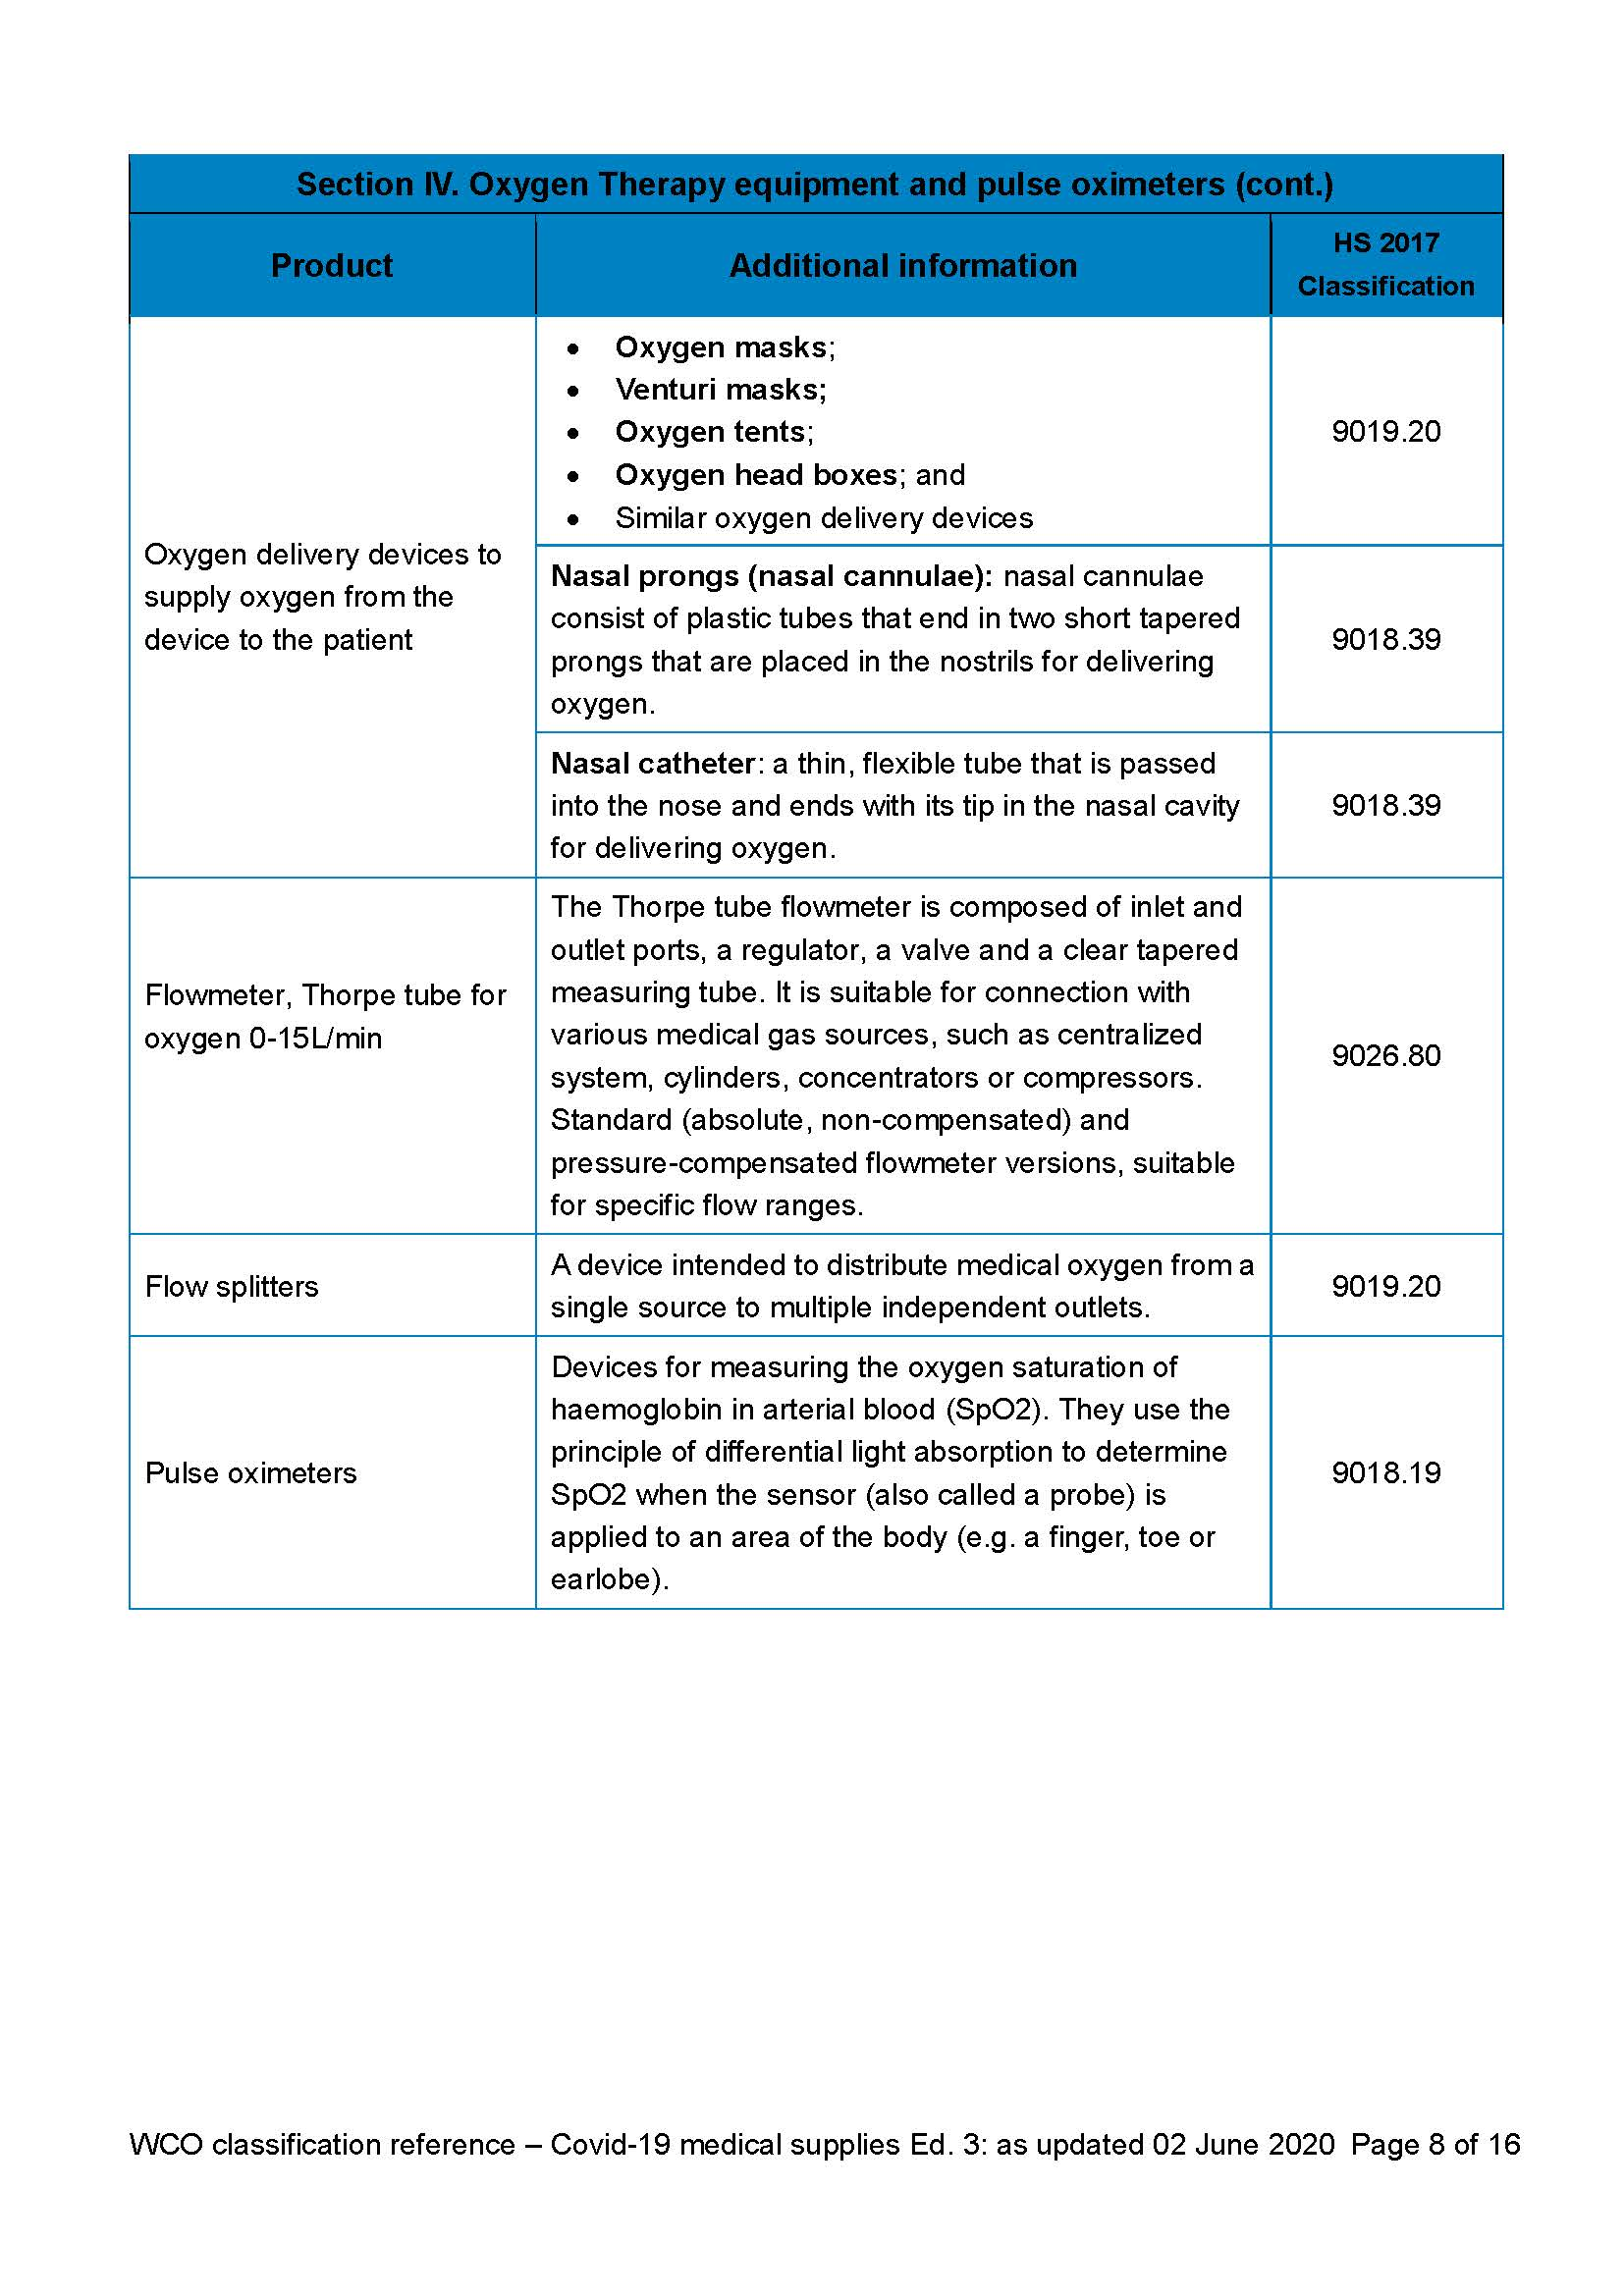 HS classification reference for Covid 19 medical supplies (3.0 Edition)_Sayfa_08